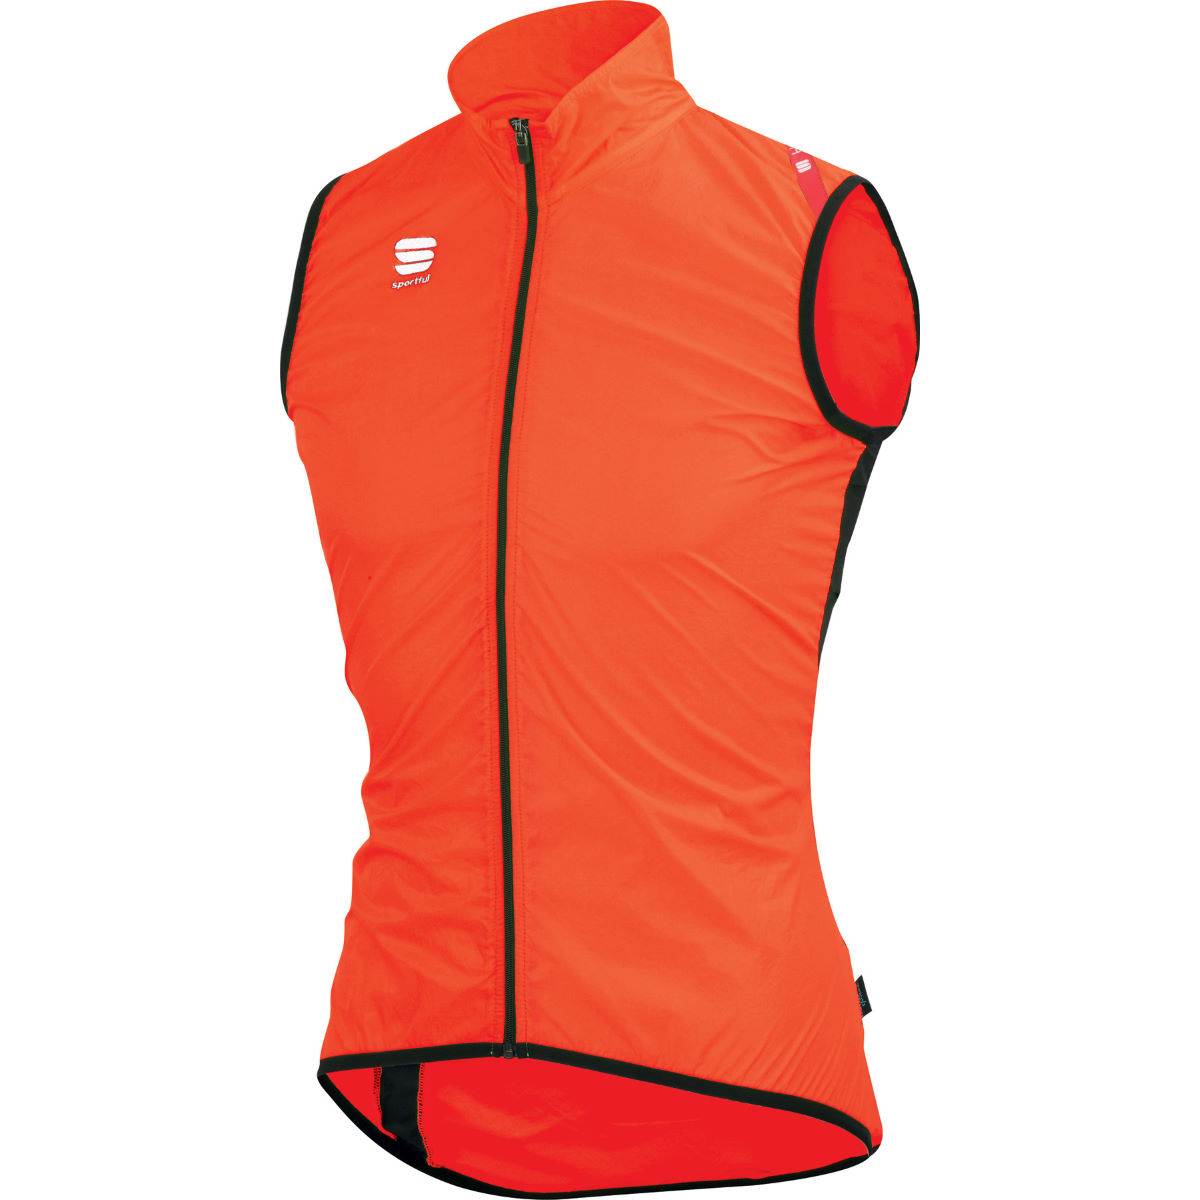 Sportful hot pack 5 vest cycling gilets red ss17 1101136 051 x s